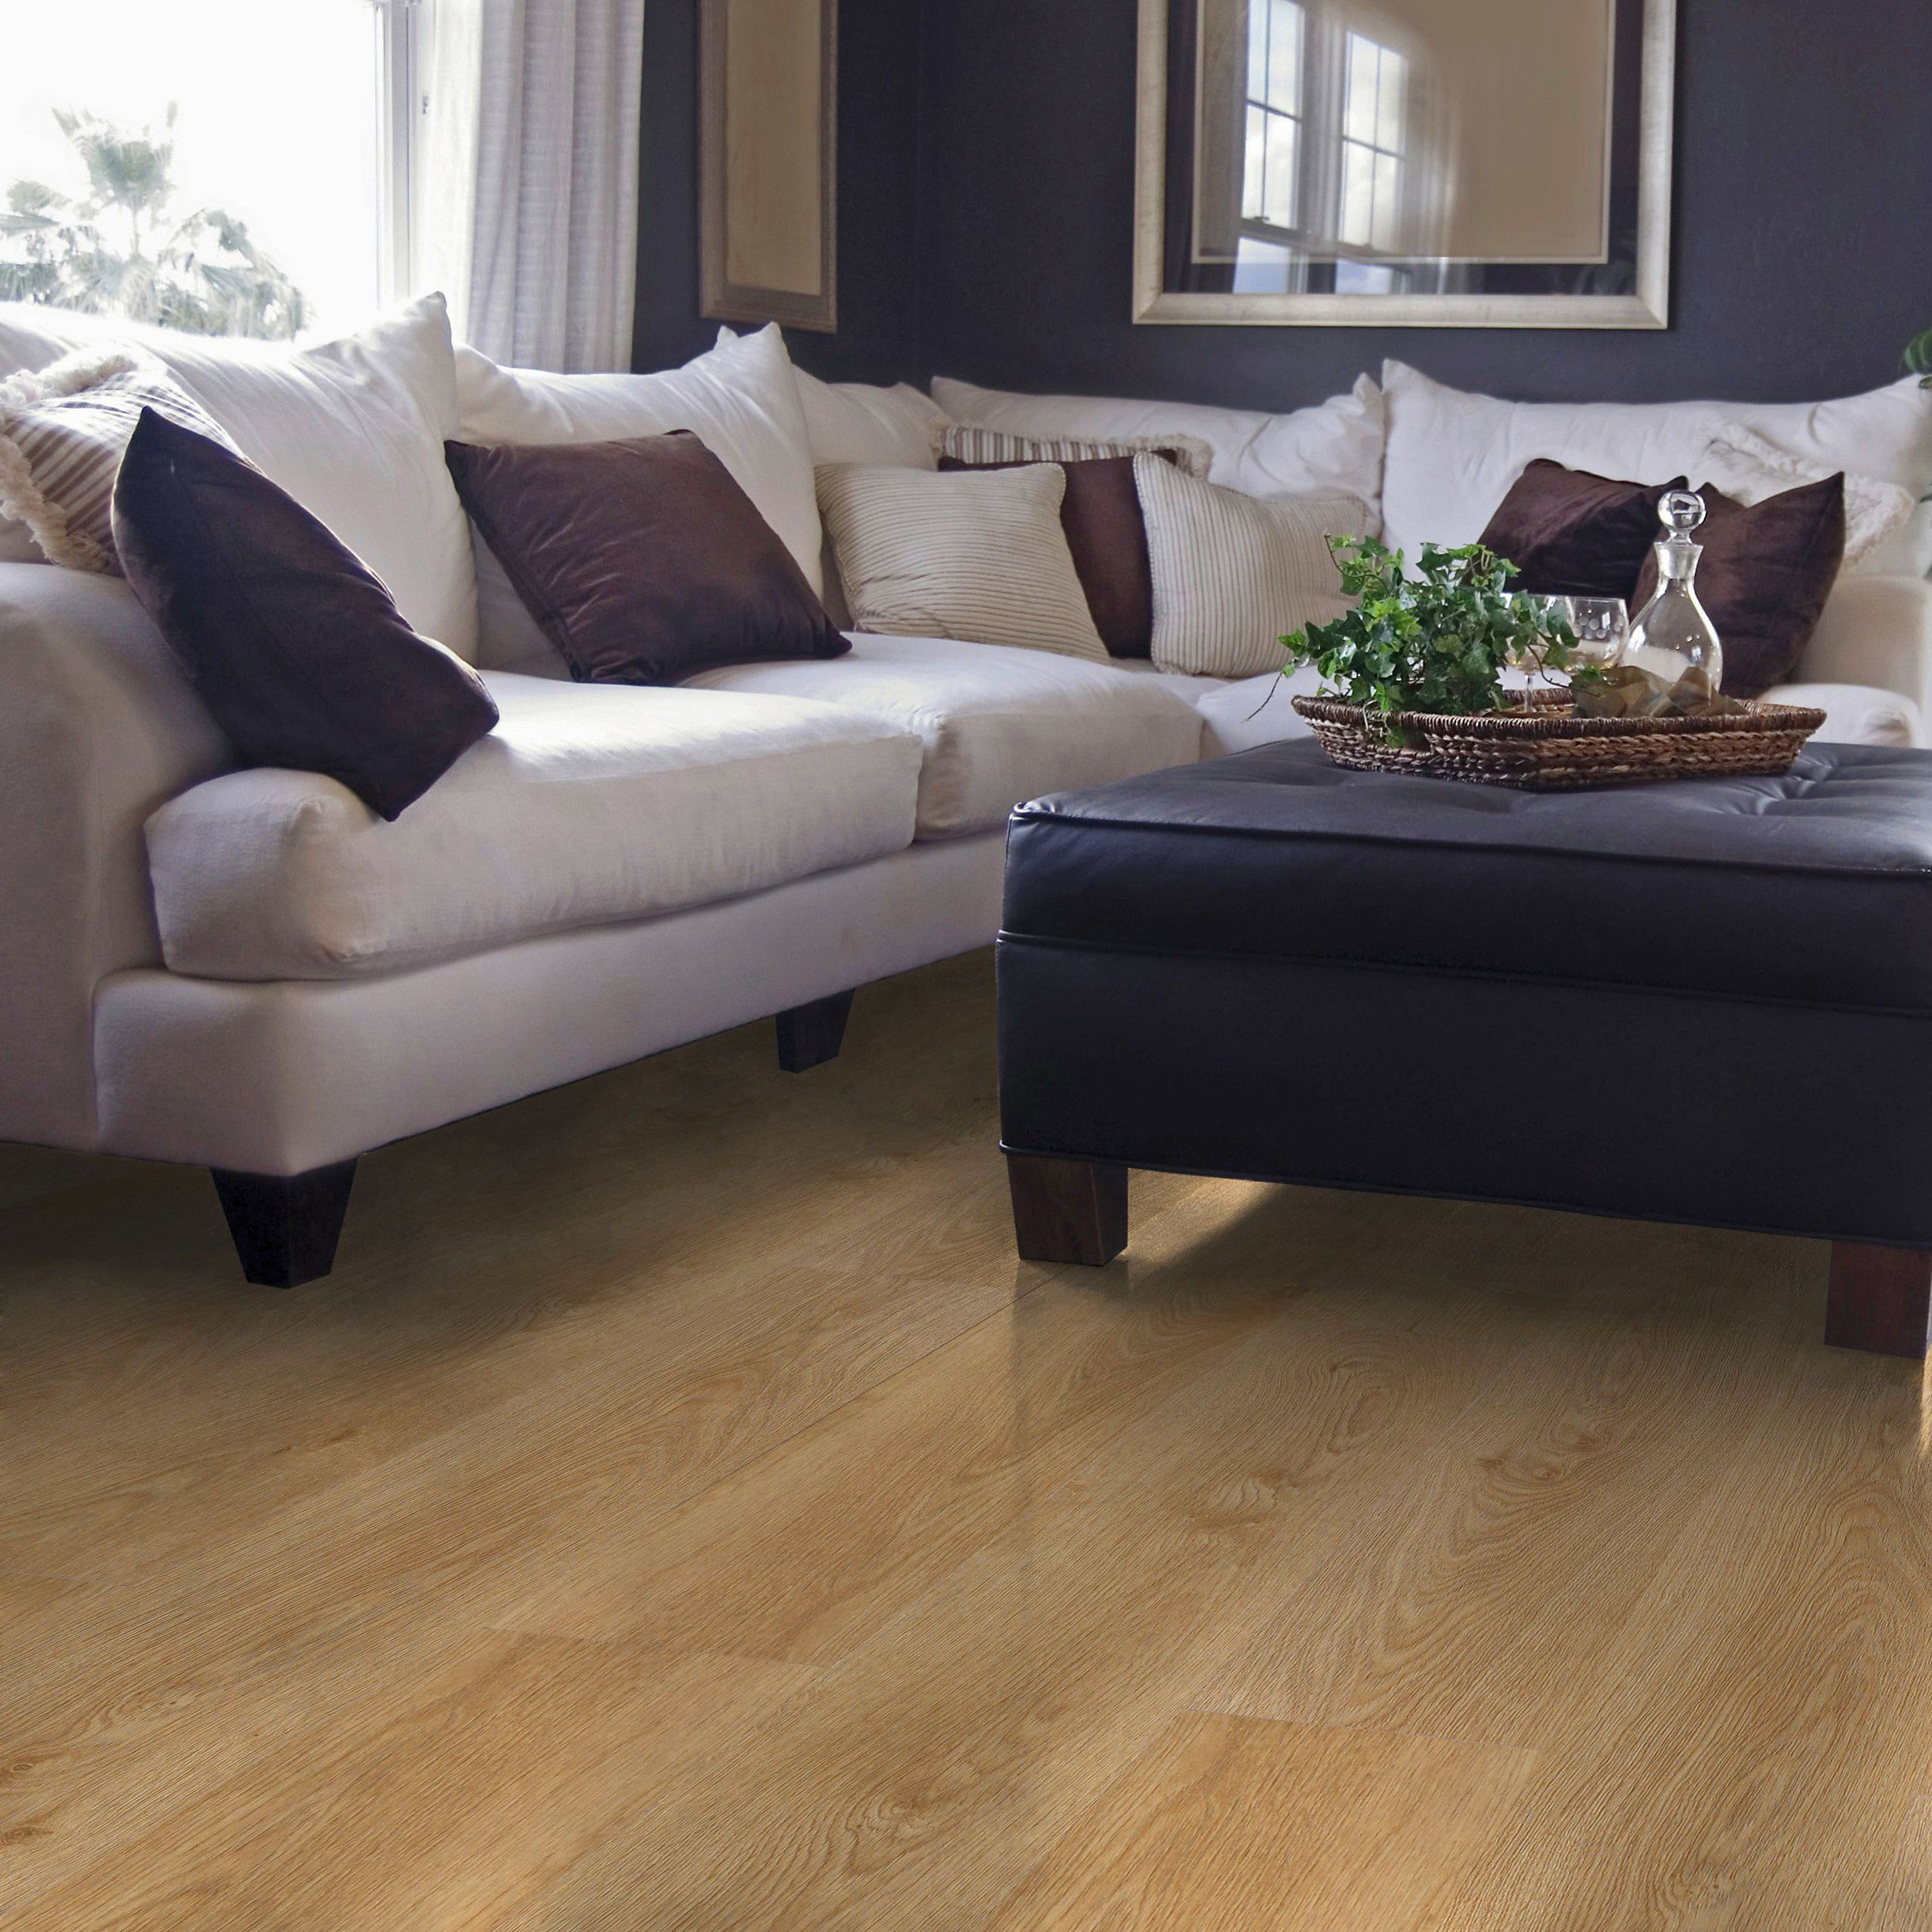 Overture Milano Oak Effect Laminate Flooring 1 25 M² Pack Departments Diy At B Q